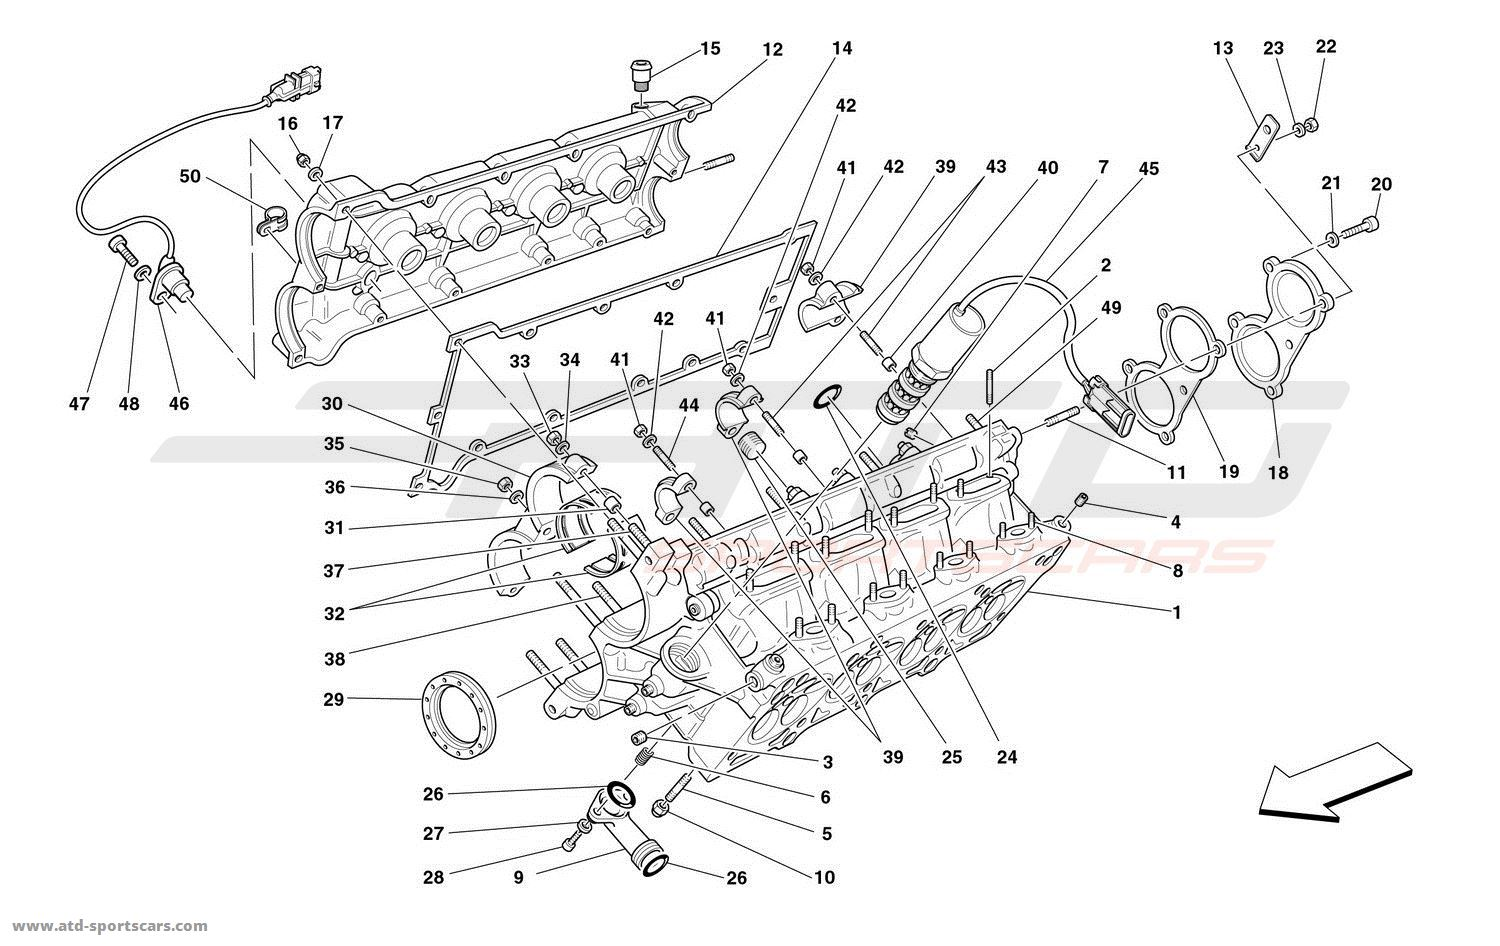 Ferrari 360 Engine Diagram Electrical Wiring Diagrams Spider Parts At Atd Sportscars Yellow Modena